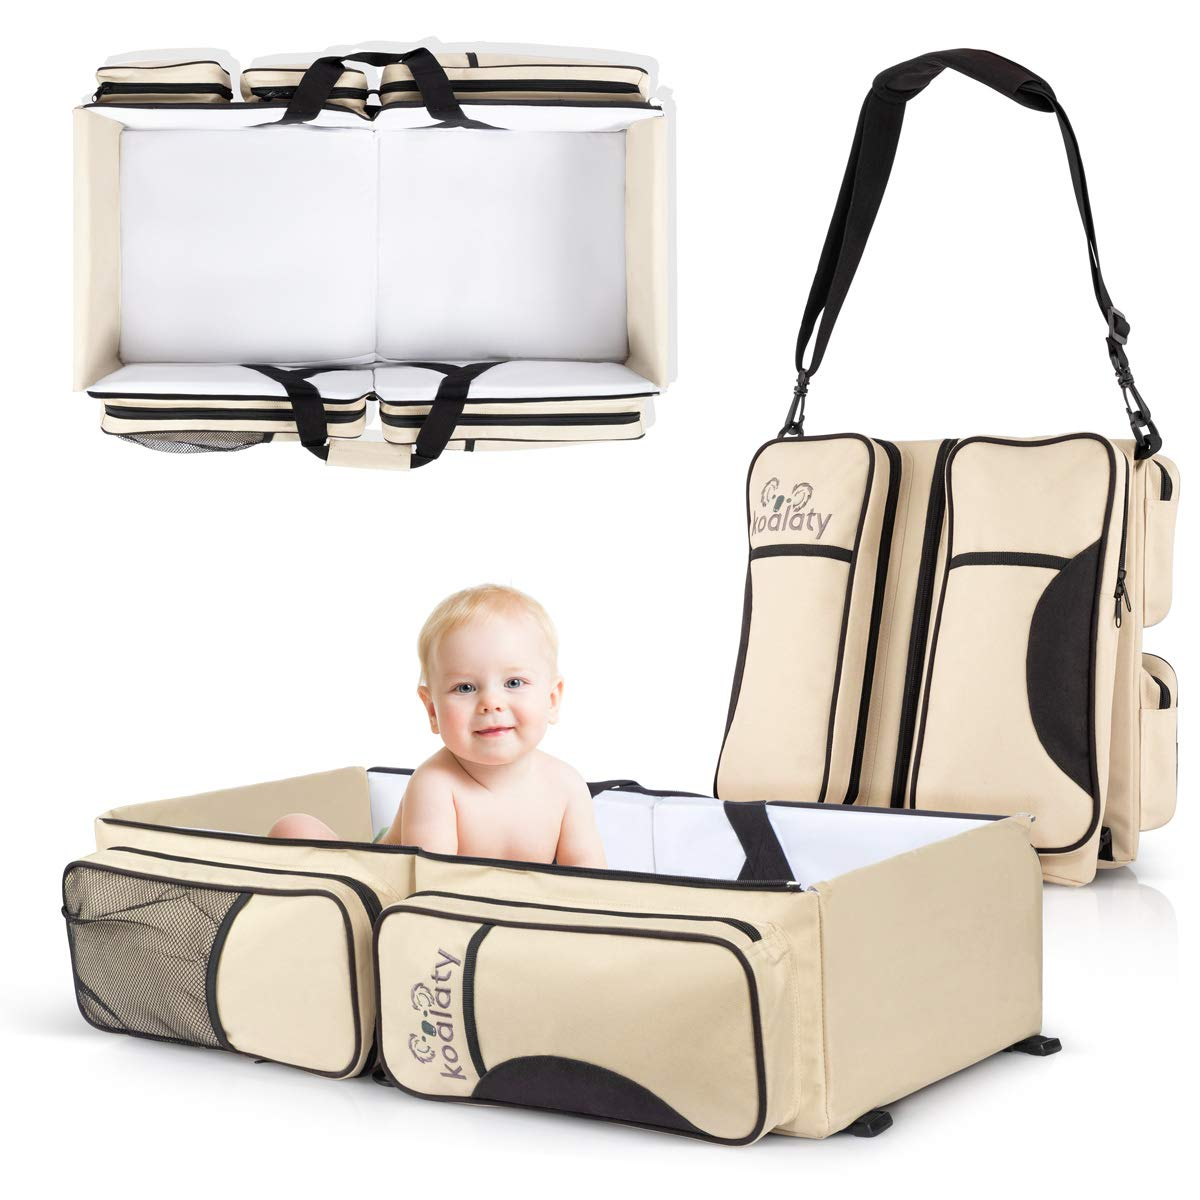 Koalaty 3-in-1 Universal Baby Travel Bag Portable Bassinet Crib, Changing Station, and Diaper Bag for Newborns or Infants. The Best for New mom and dad.